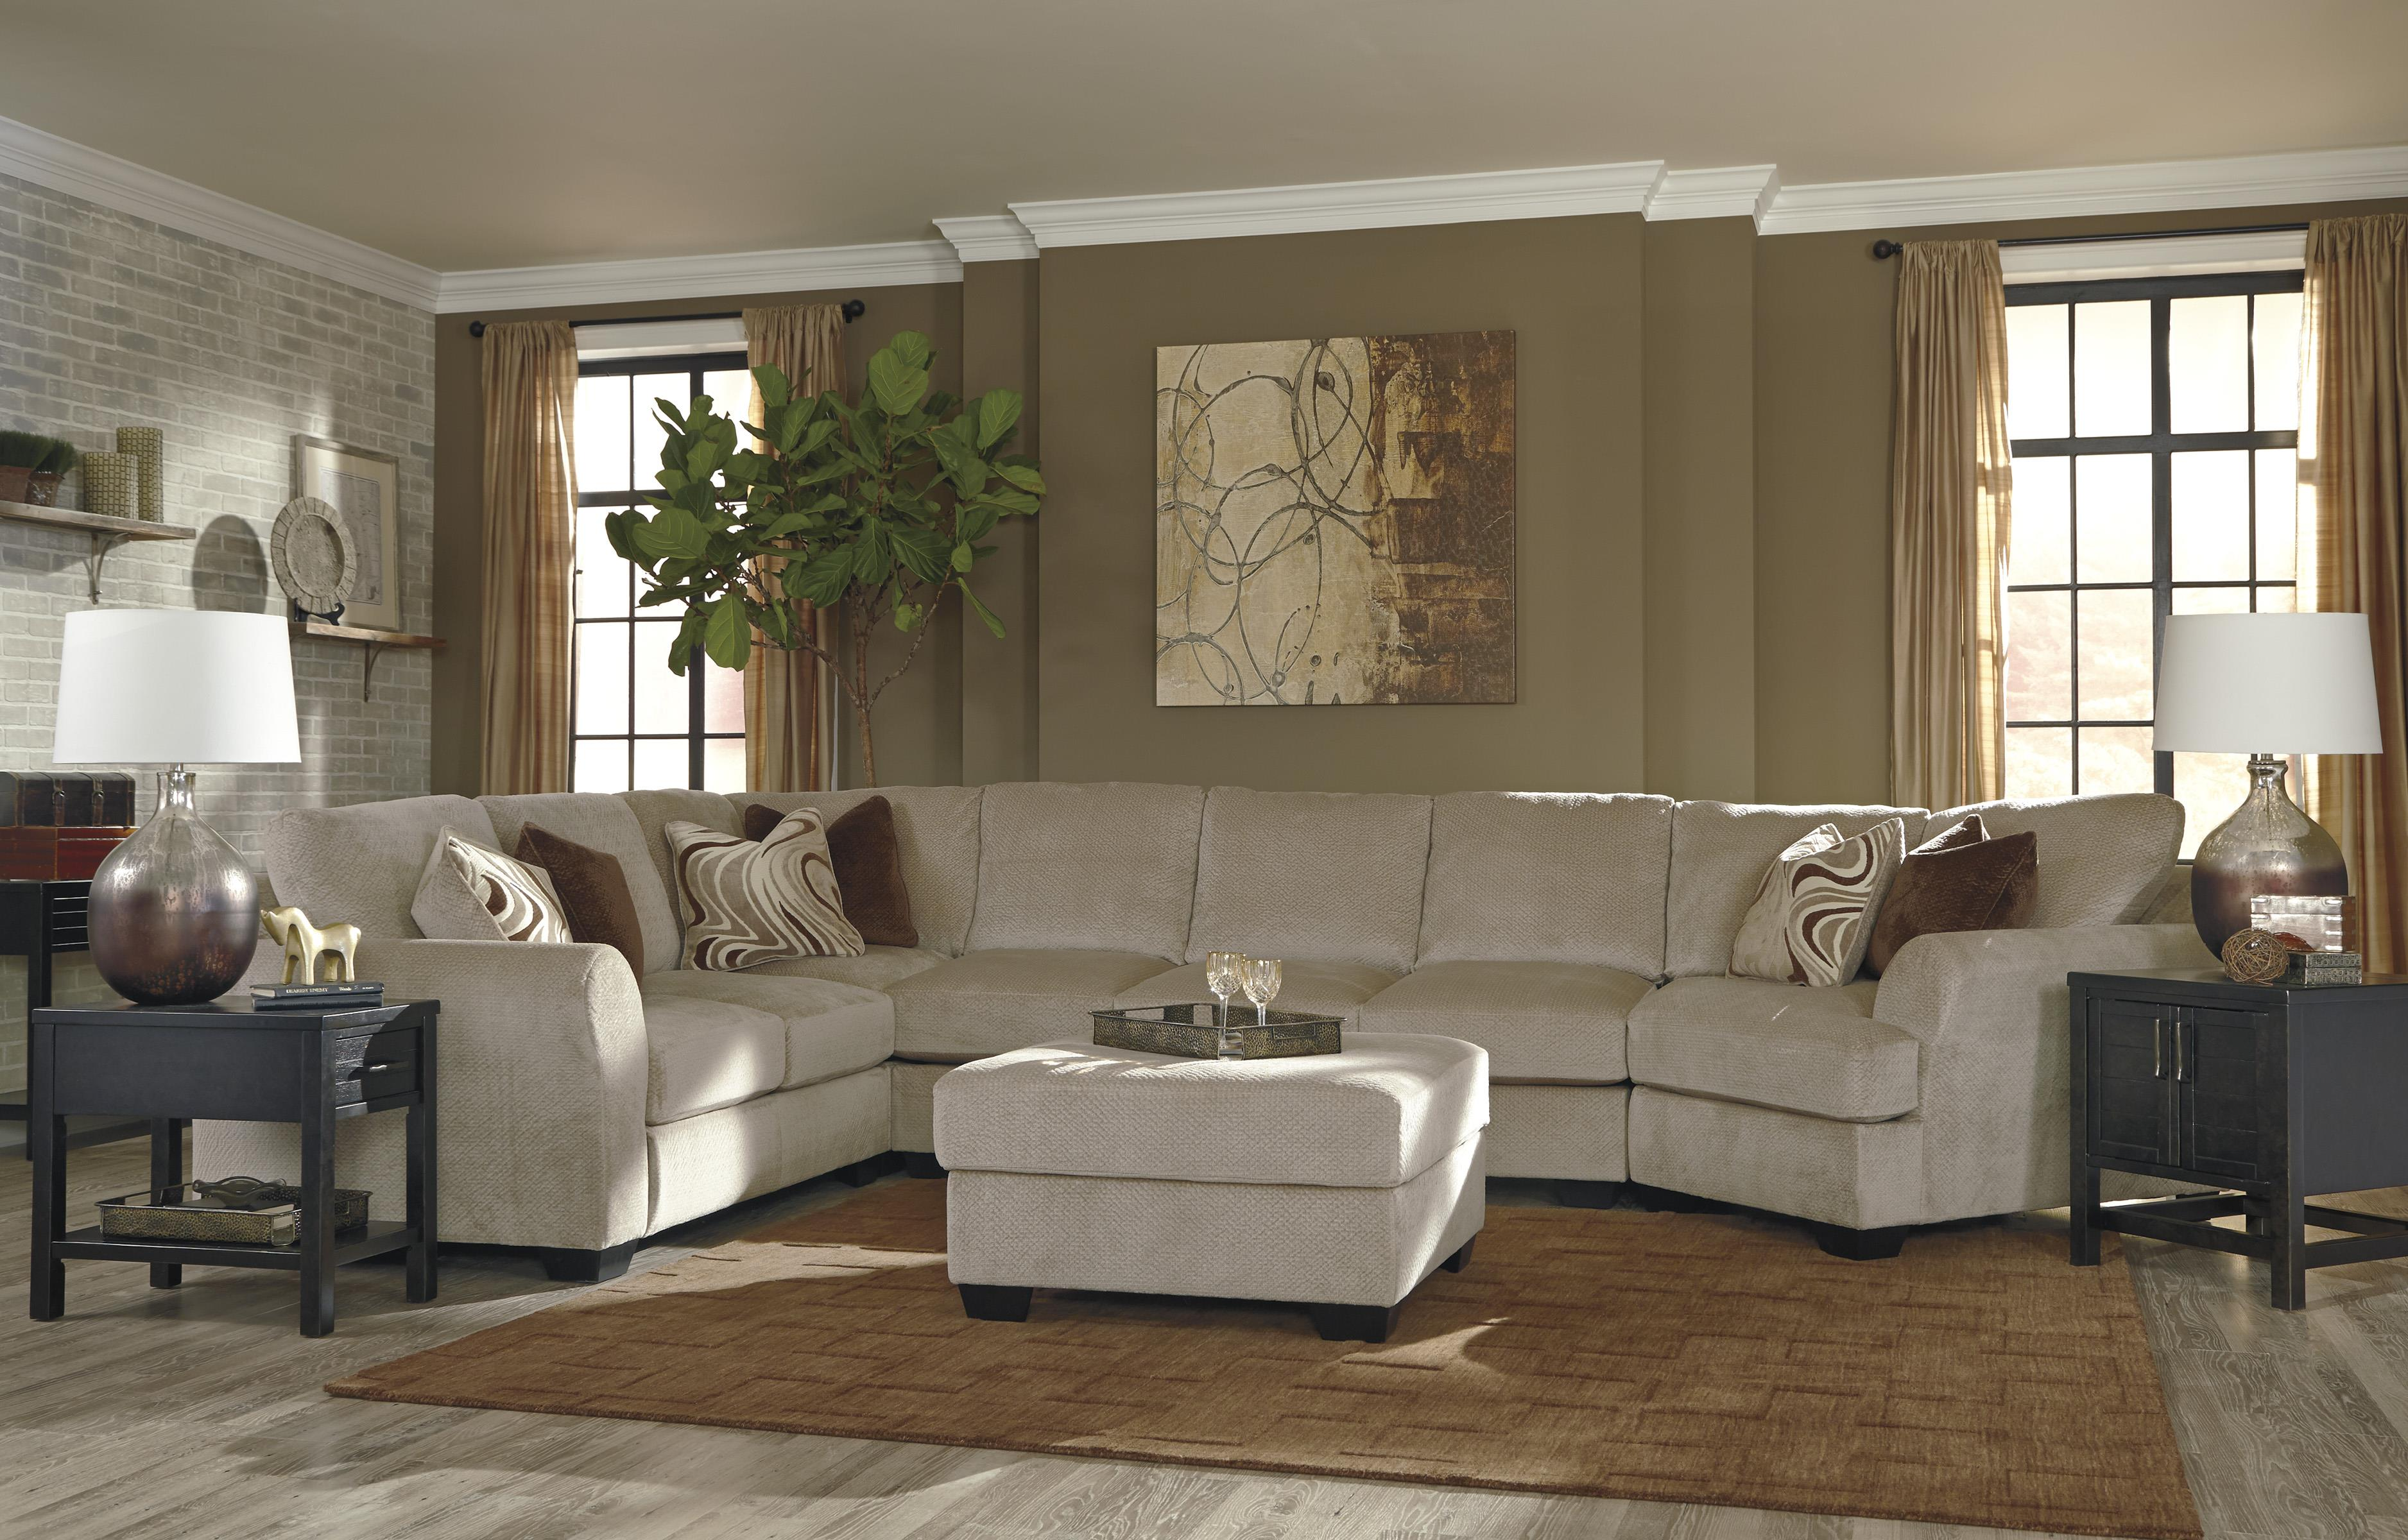 Benchcraft Hazes Stationary Living Room Group - Item Number: 65701 Living Room Group 7